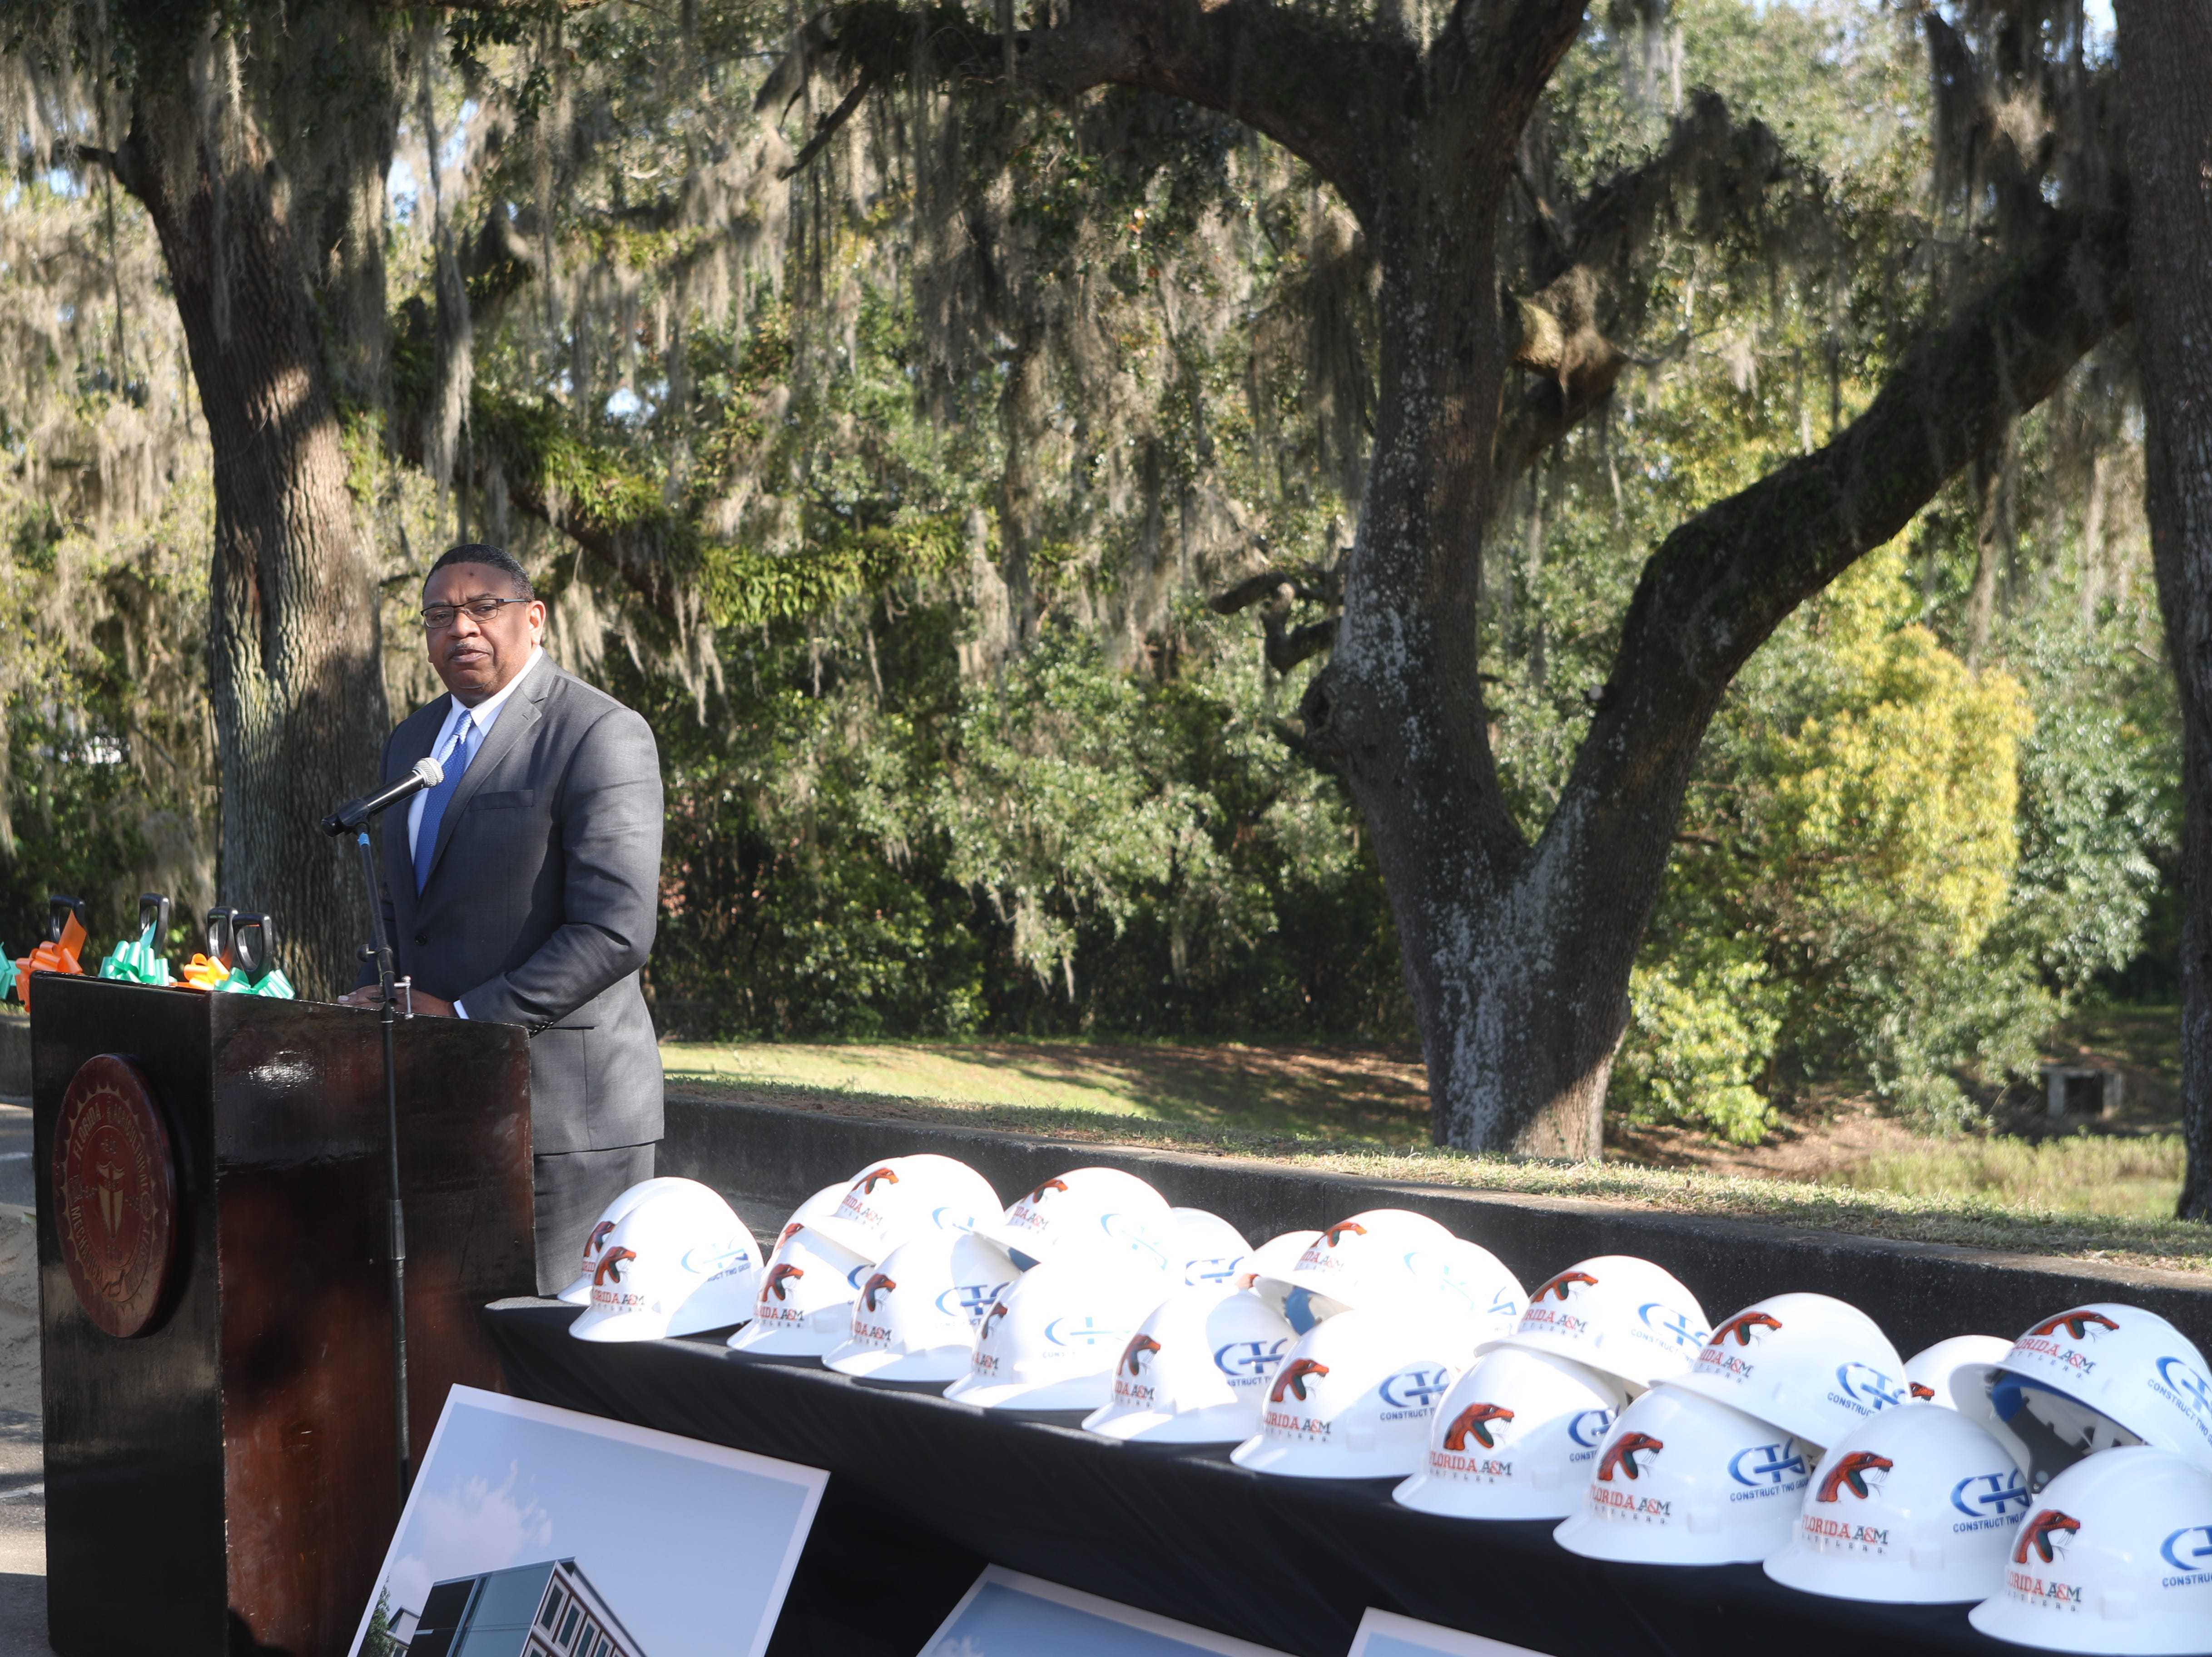 Florida A&M Board of Trustees Chair Kelvin Lawson speaks during a groundbreaking celebration for a new residence hall on the Florida A&M campus Wednesday, March 6, 2019.